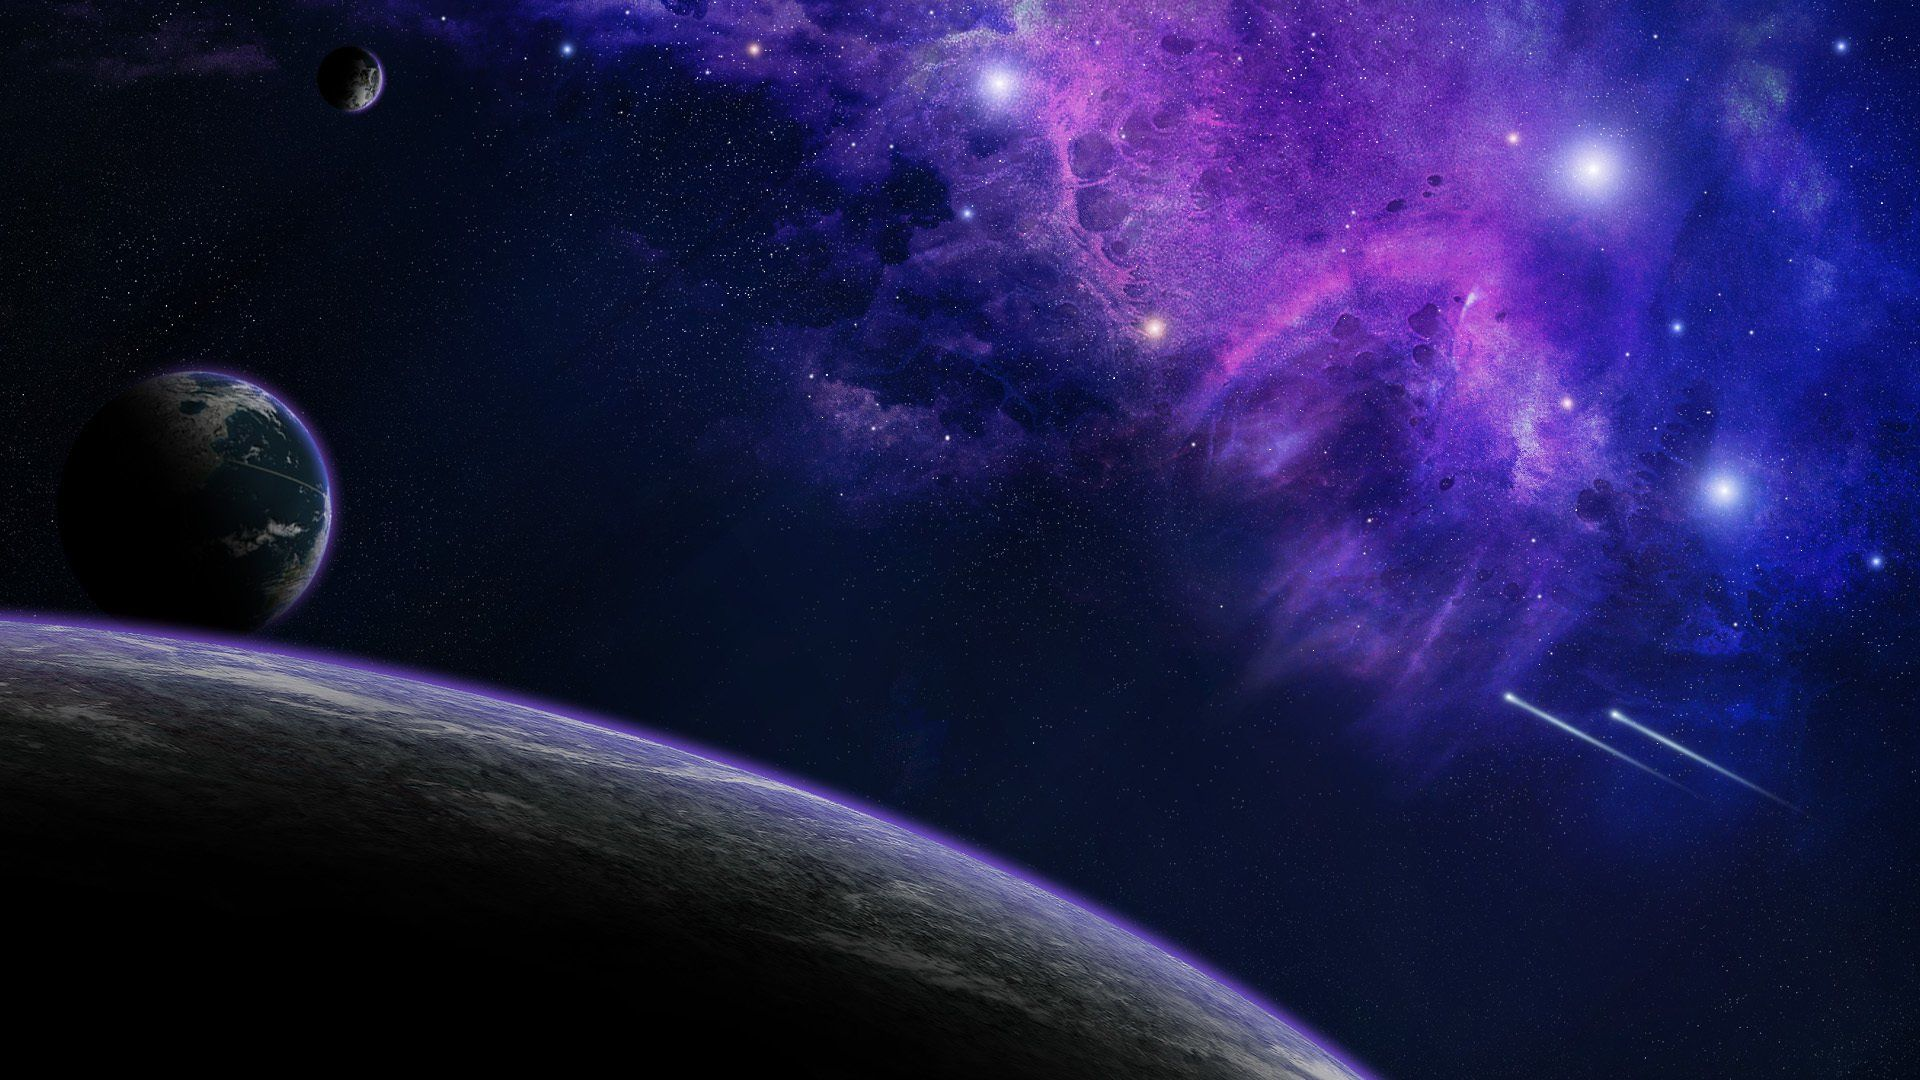 Space universe galaxy cosmos astronomy planet star colors colorful 1920x1080